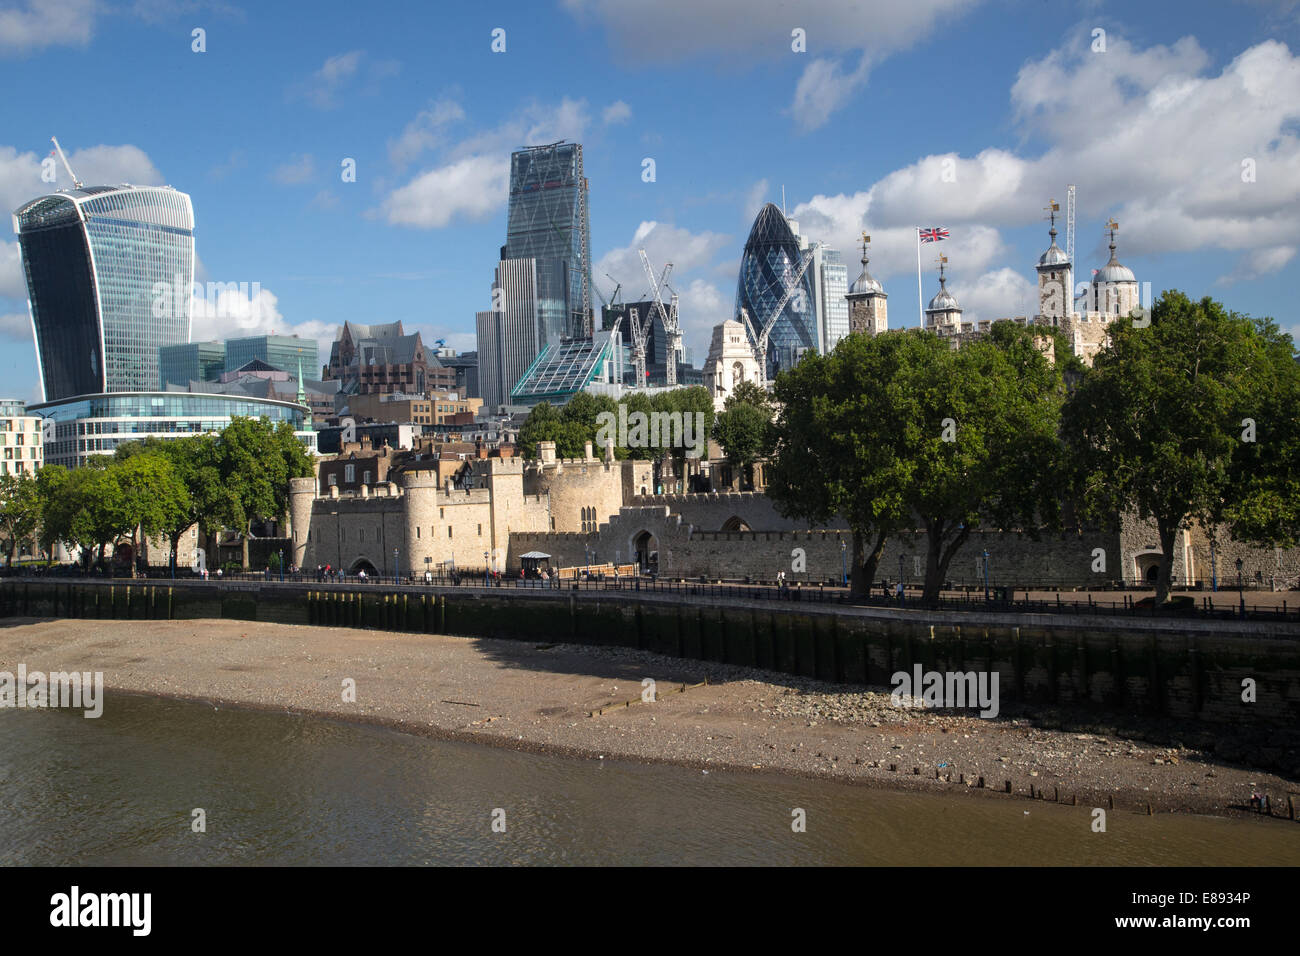 View of City of London with the Walkie-Talkie,The Gherkin,Cheesegrater and the Tower of London - Stock Image